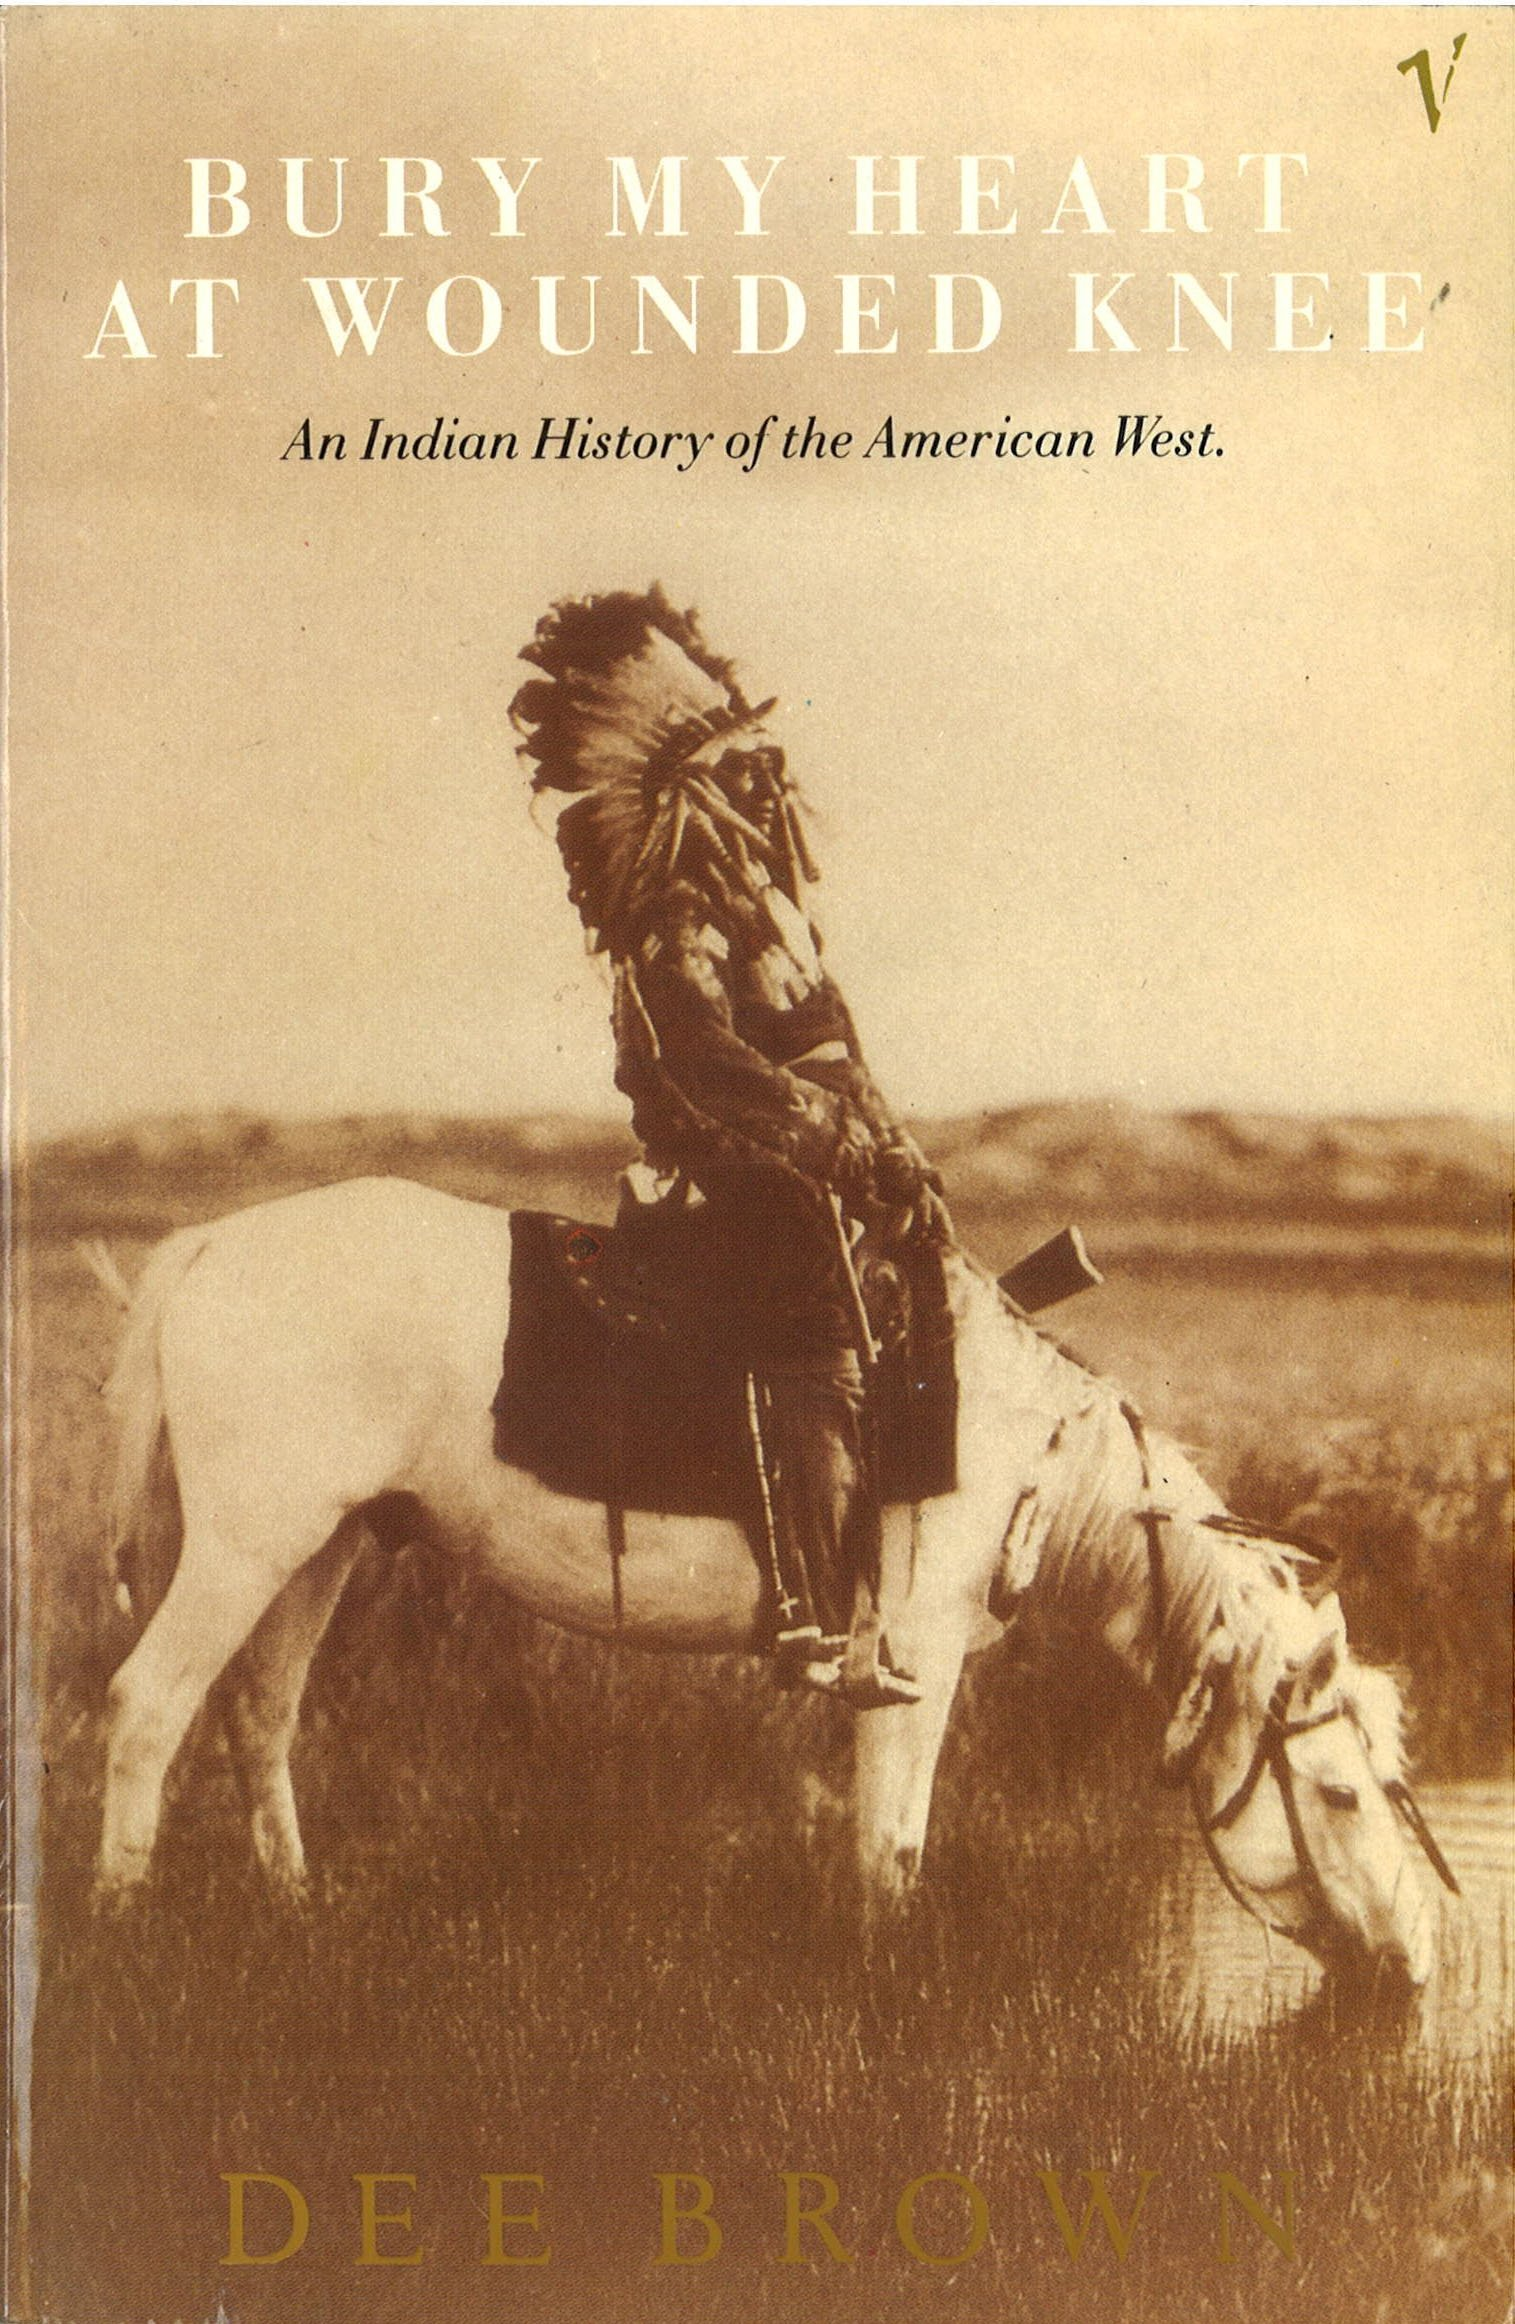 Image OfBury My Heart At Wounded Knee - An Indian History Of The American West